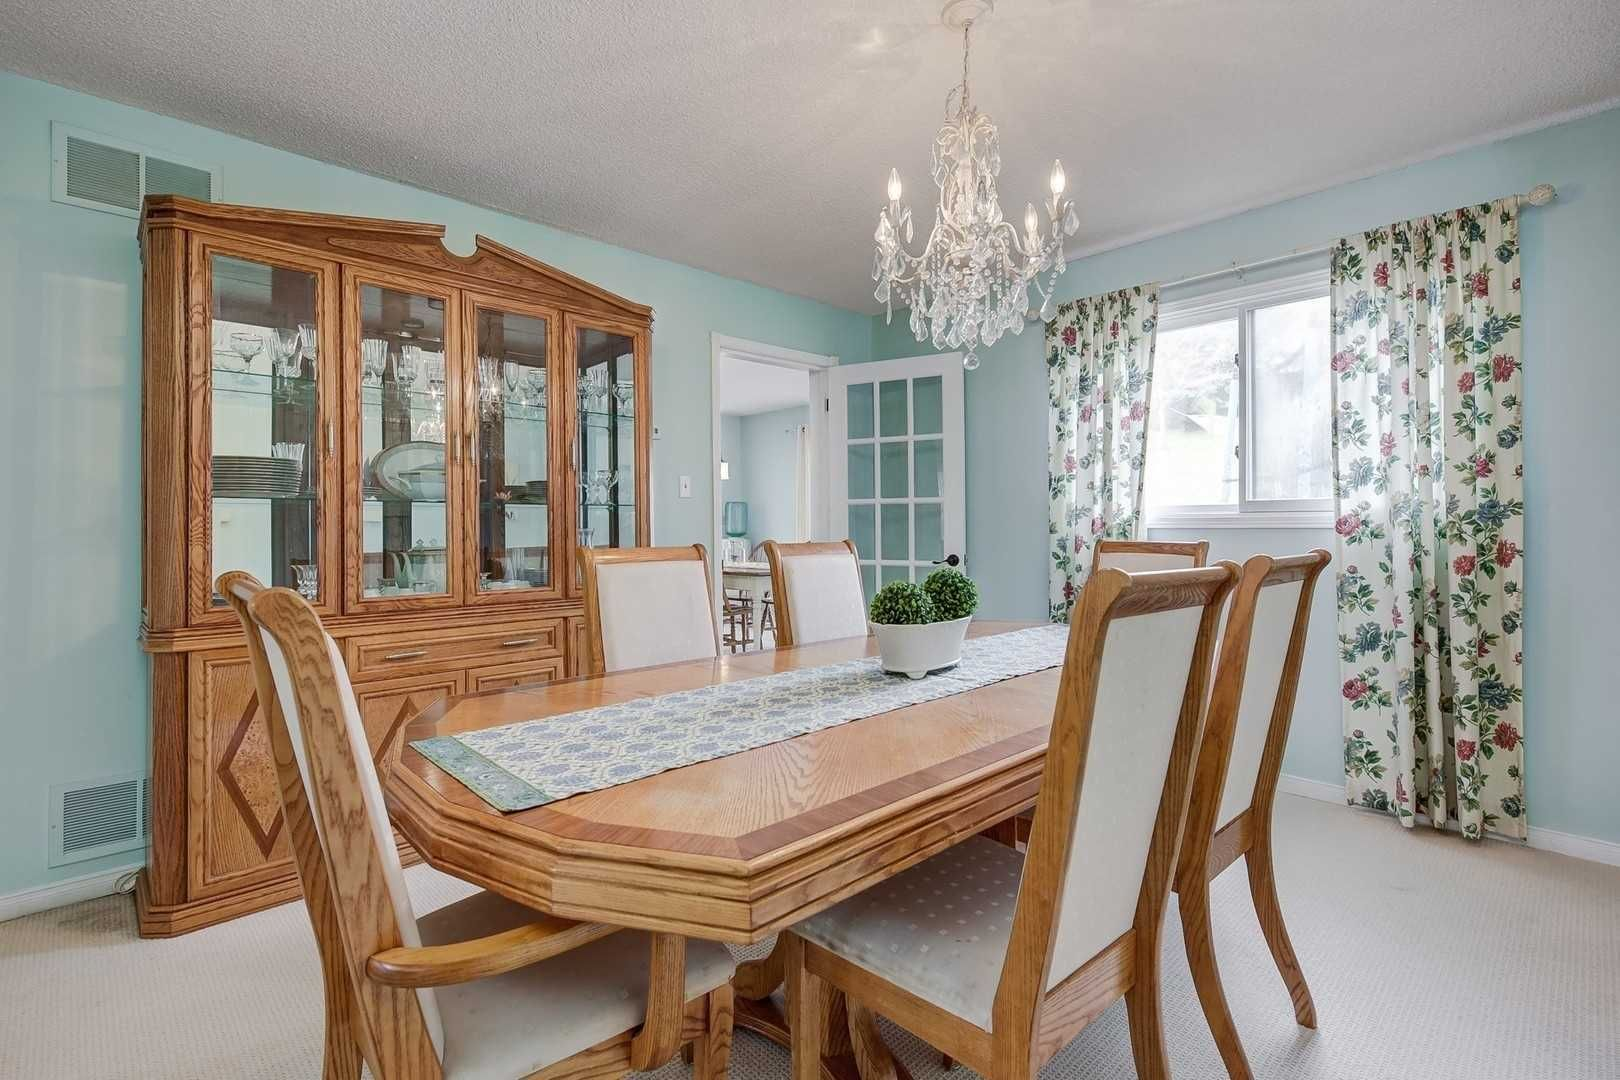 35 Royal Court for sale